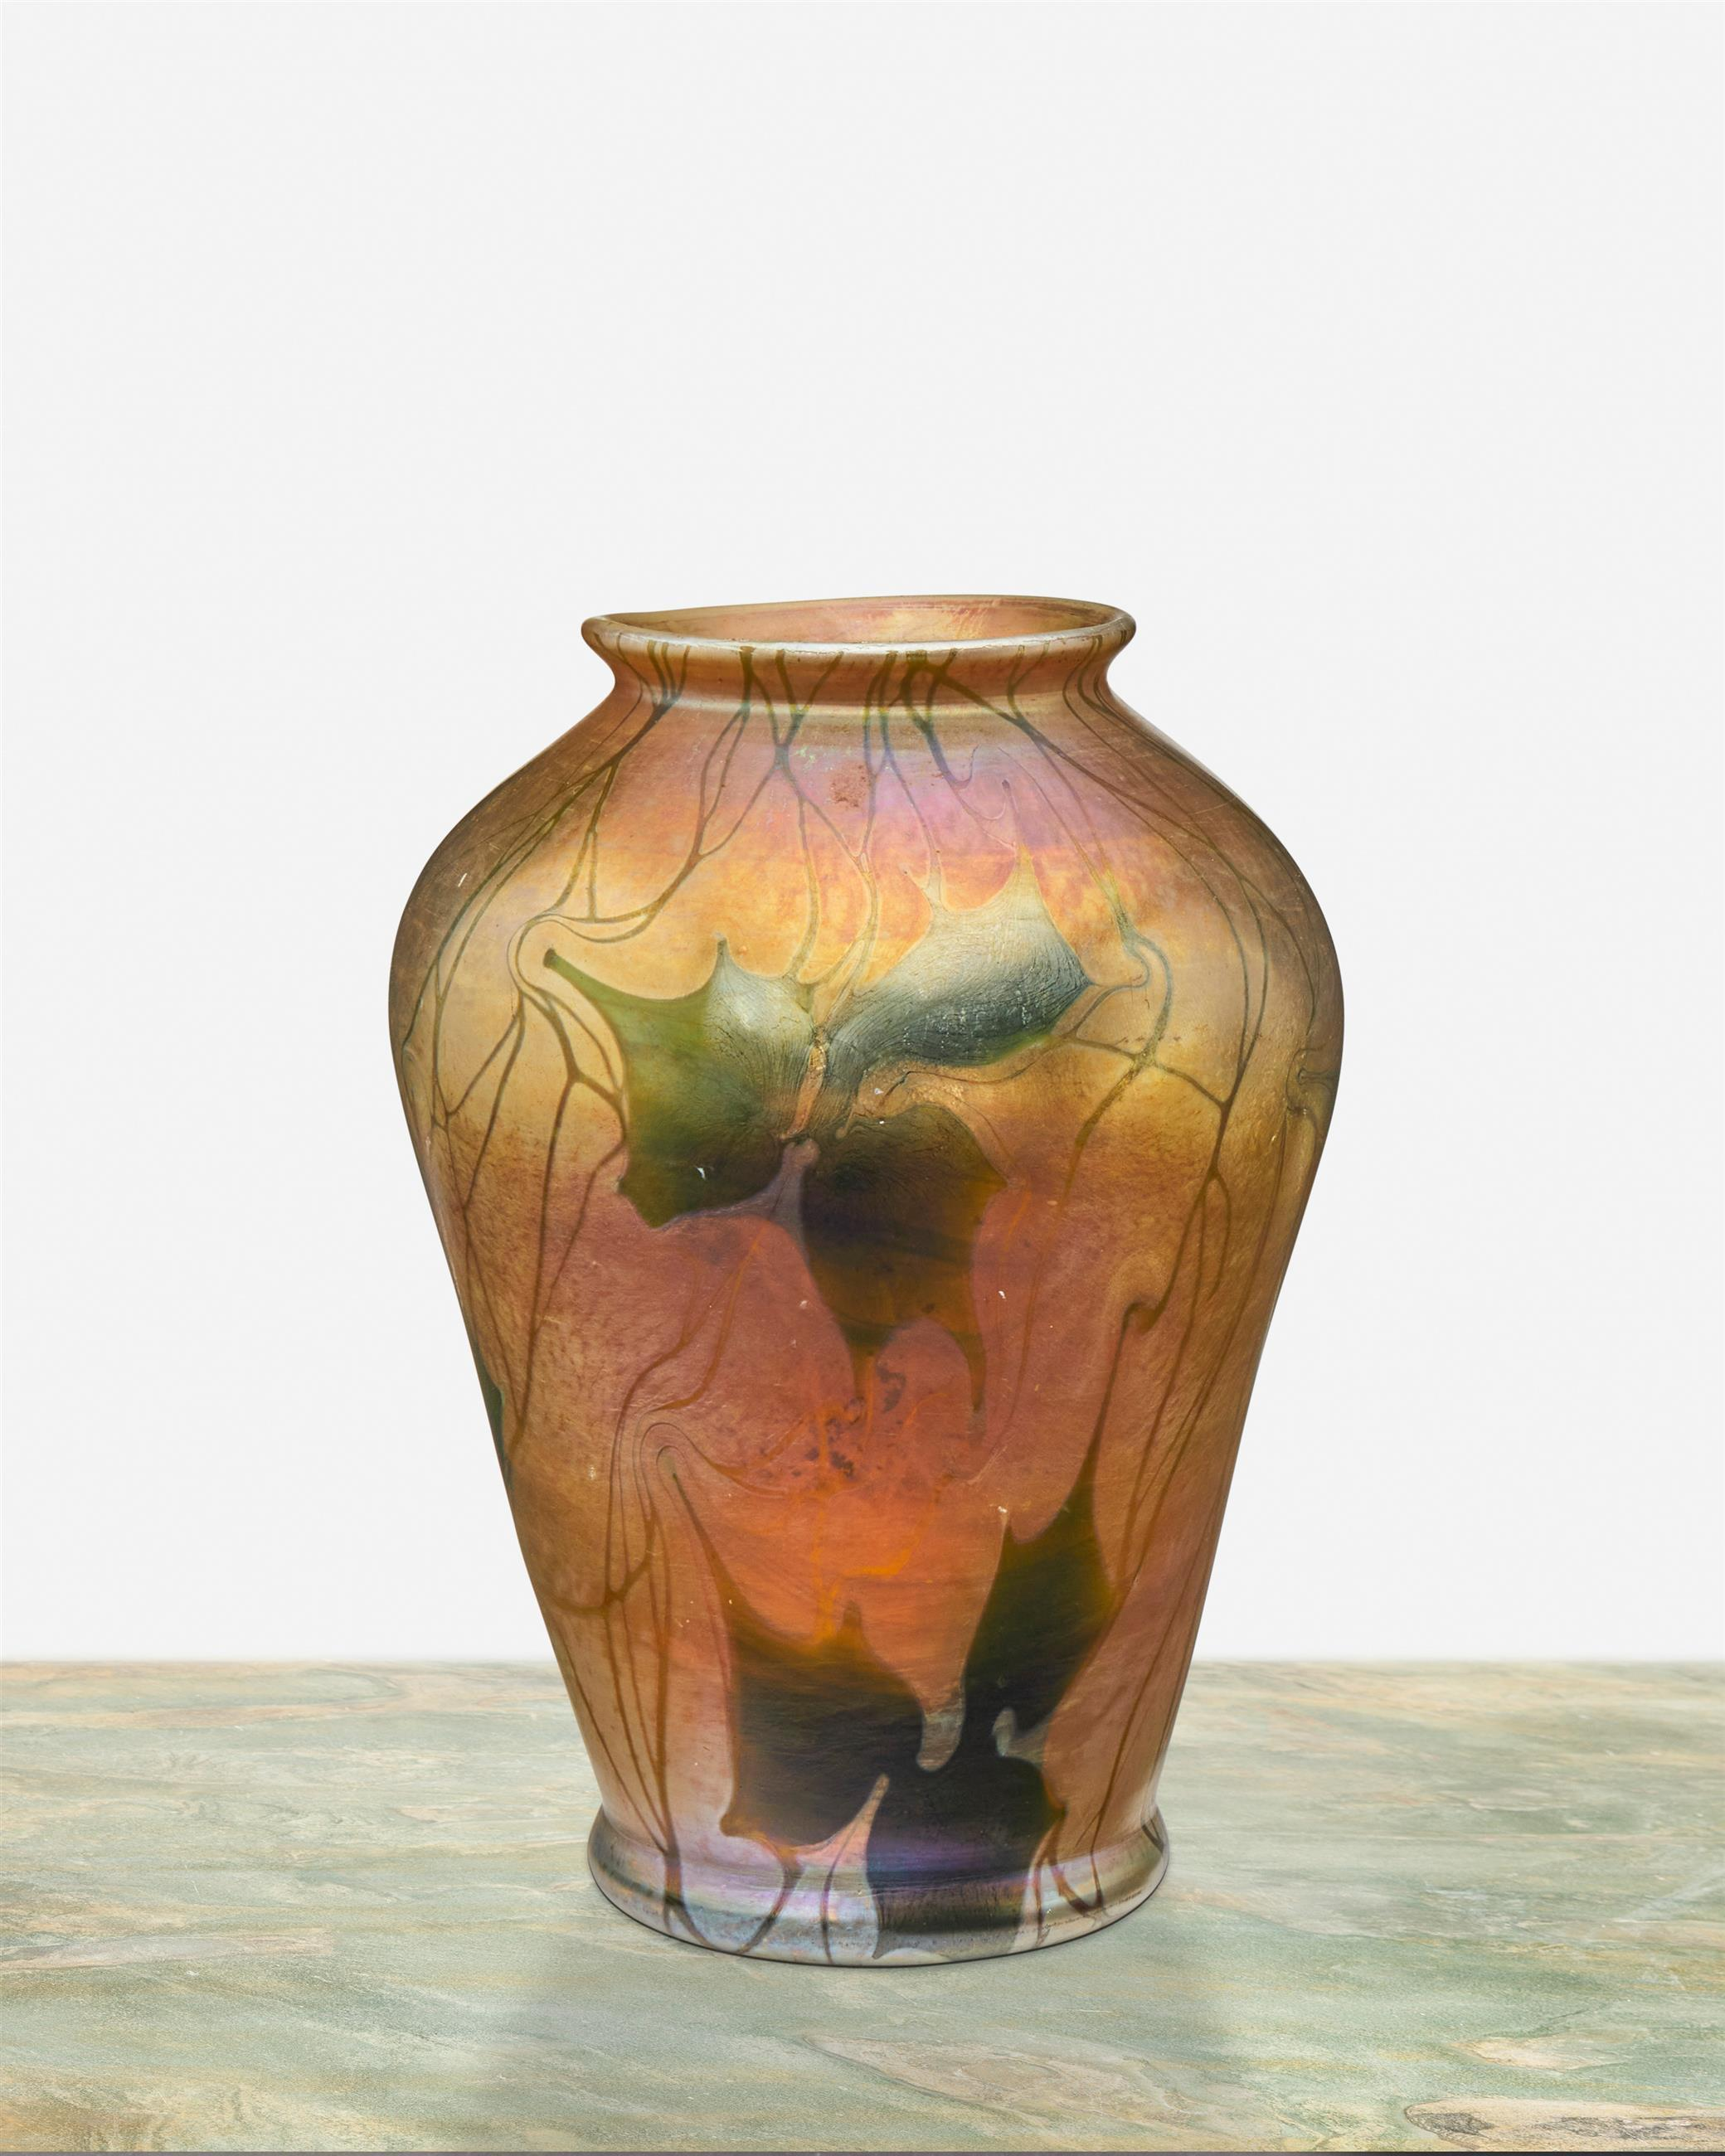 A L.C. Tiffany Favrile glass leaf and vine vase